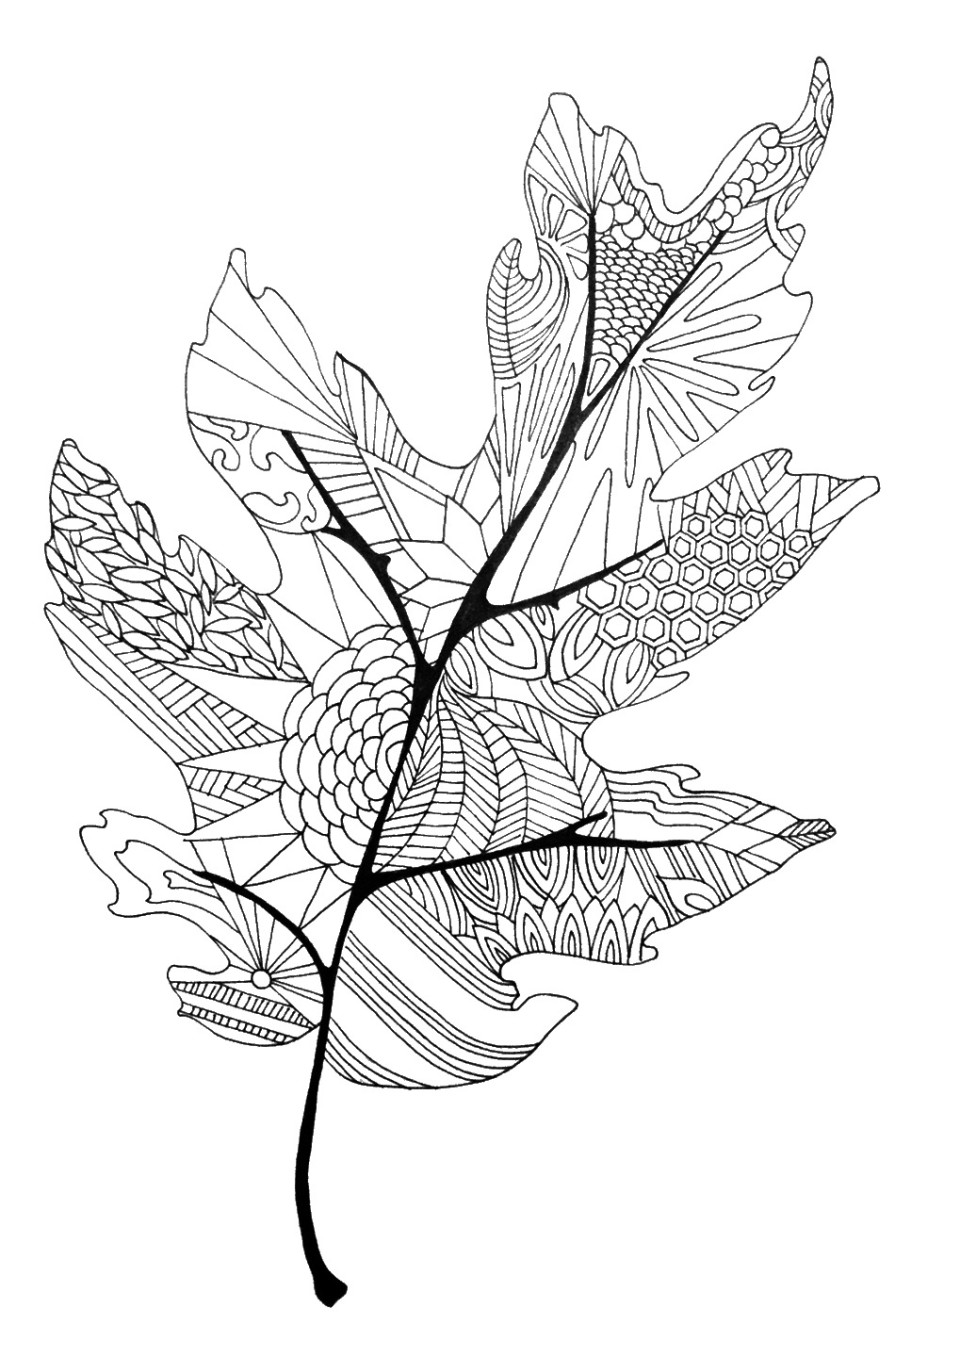 leaf coloring pages leaves coloring pages download and print leaves coloring coloring leaf pages